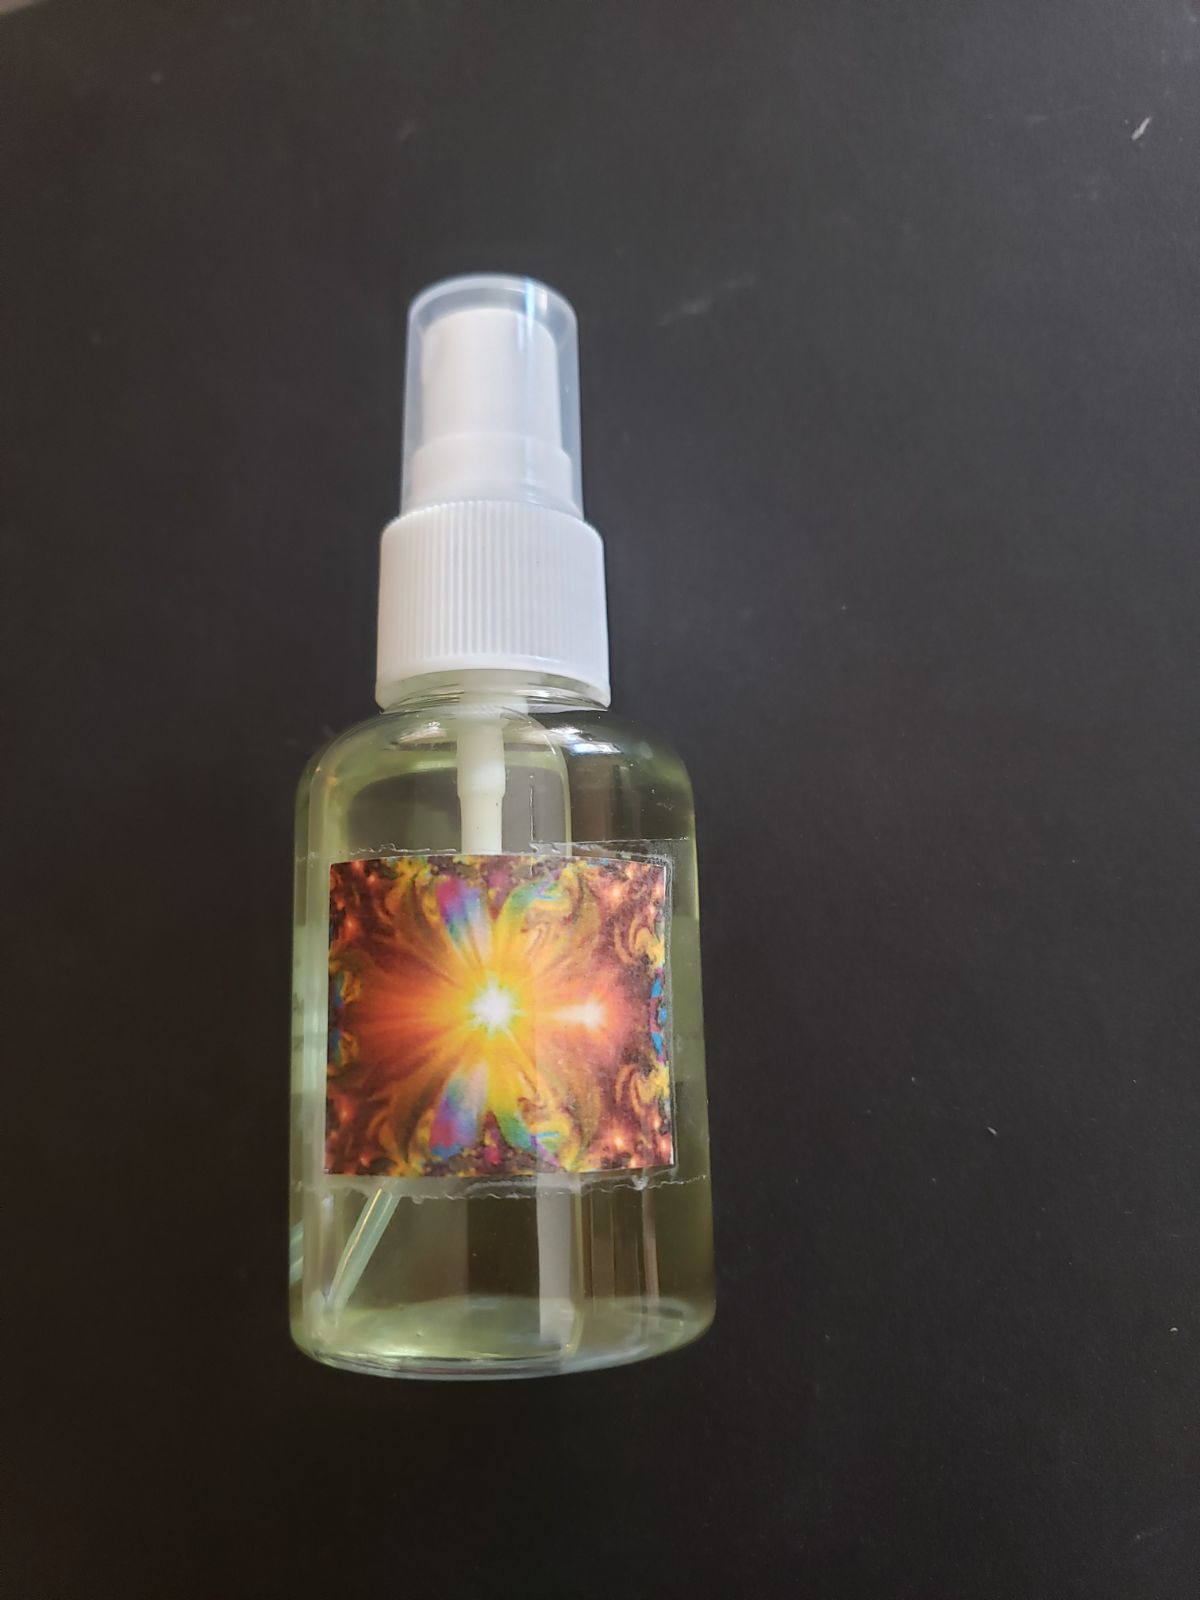 New Florida Water Cologne 4oz